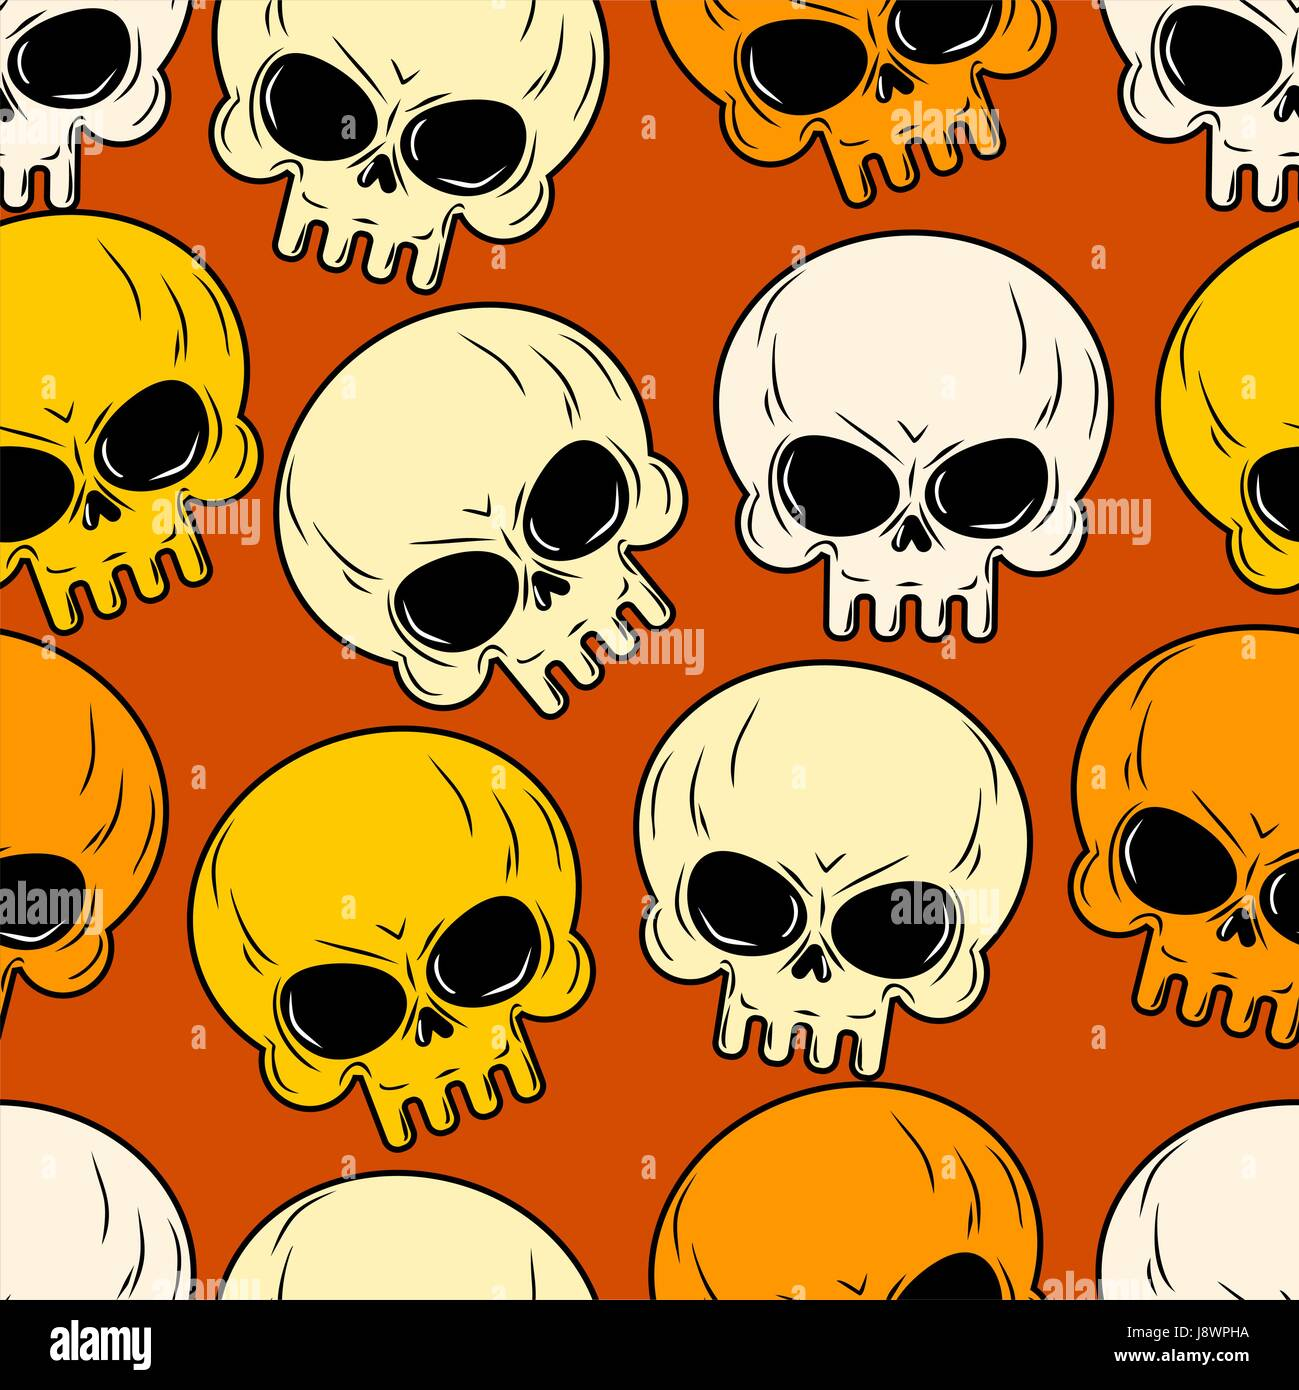 Skull seamless pattern. Texture of head skeleton. Background for Halloween. Cute skull in gentle tones. - Stock Image